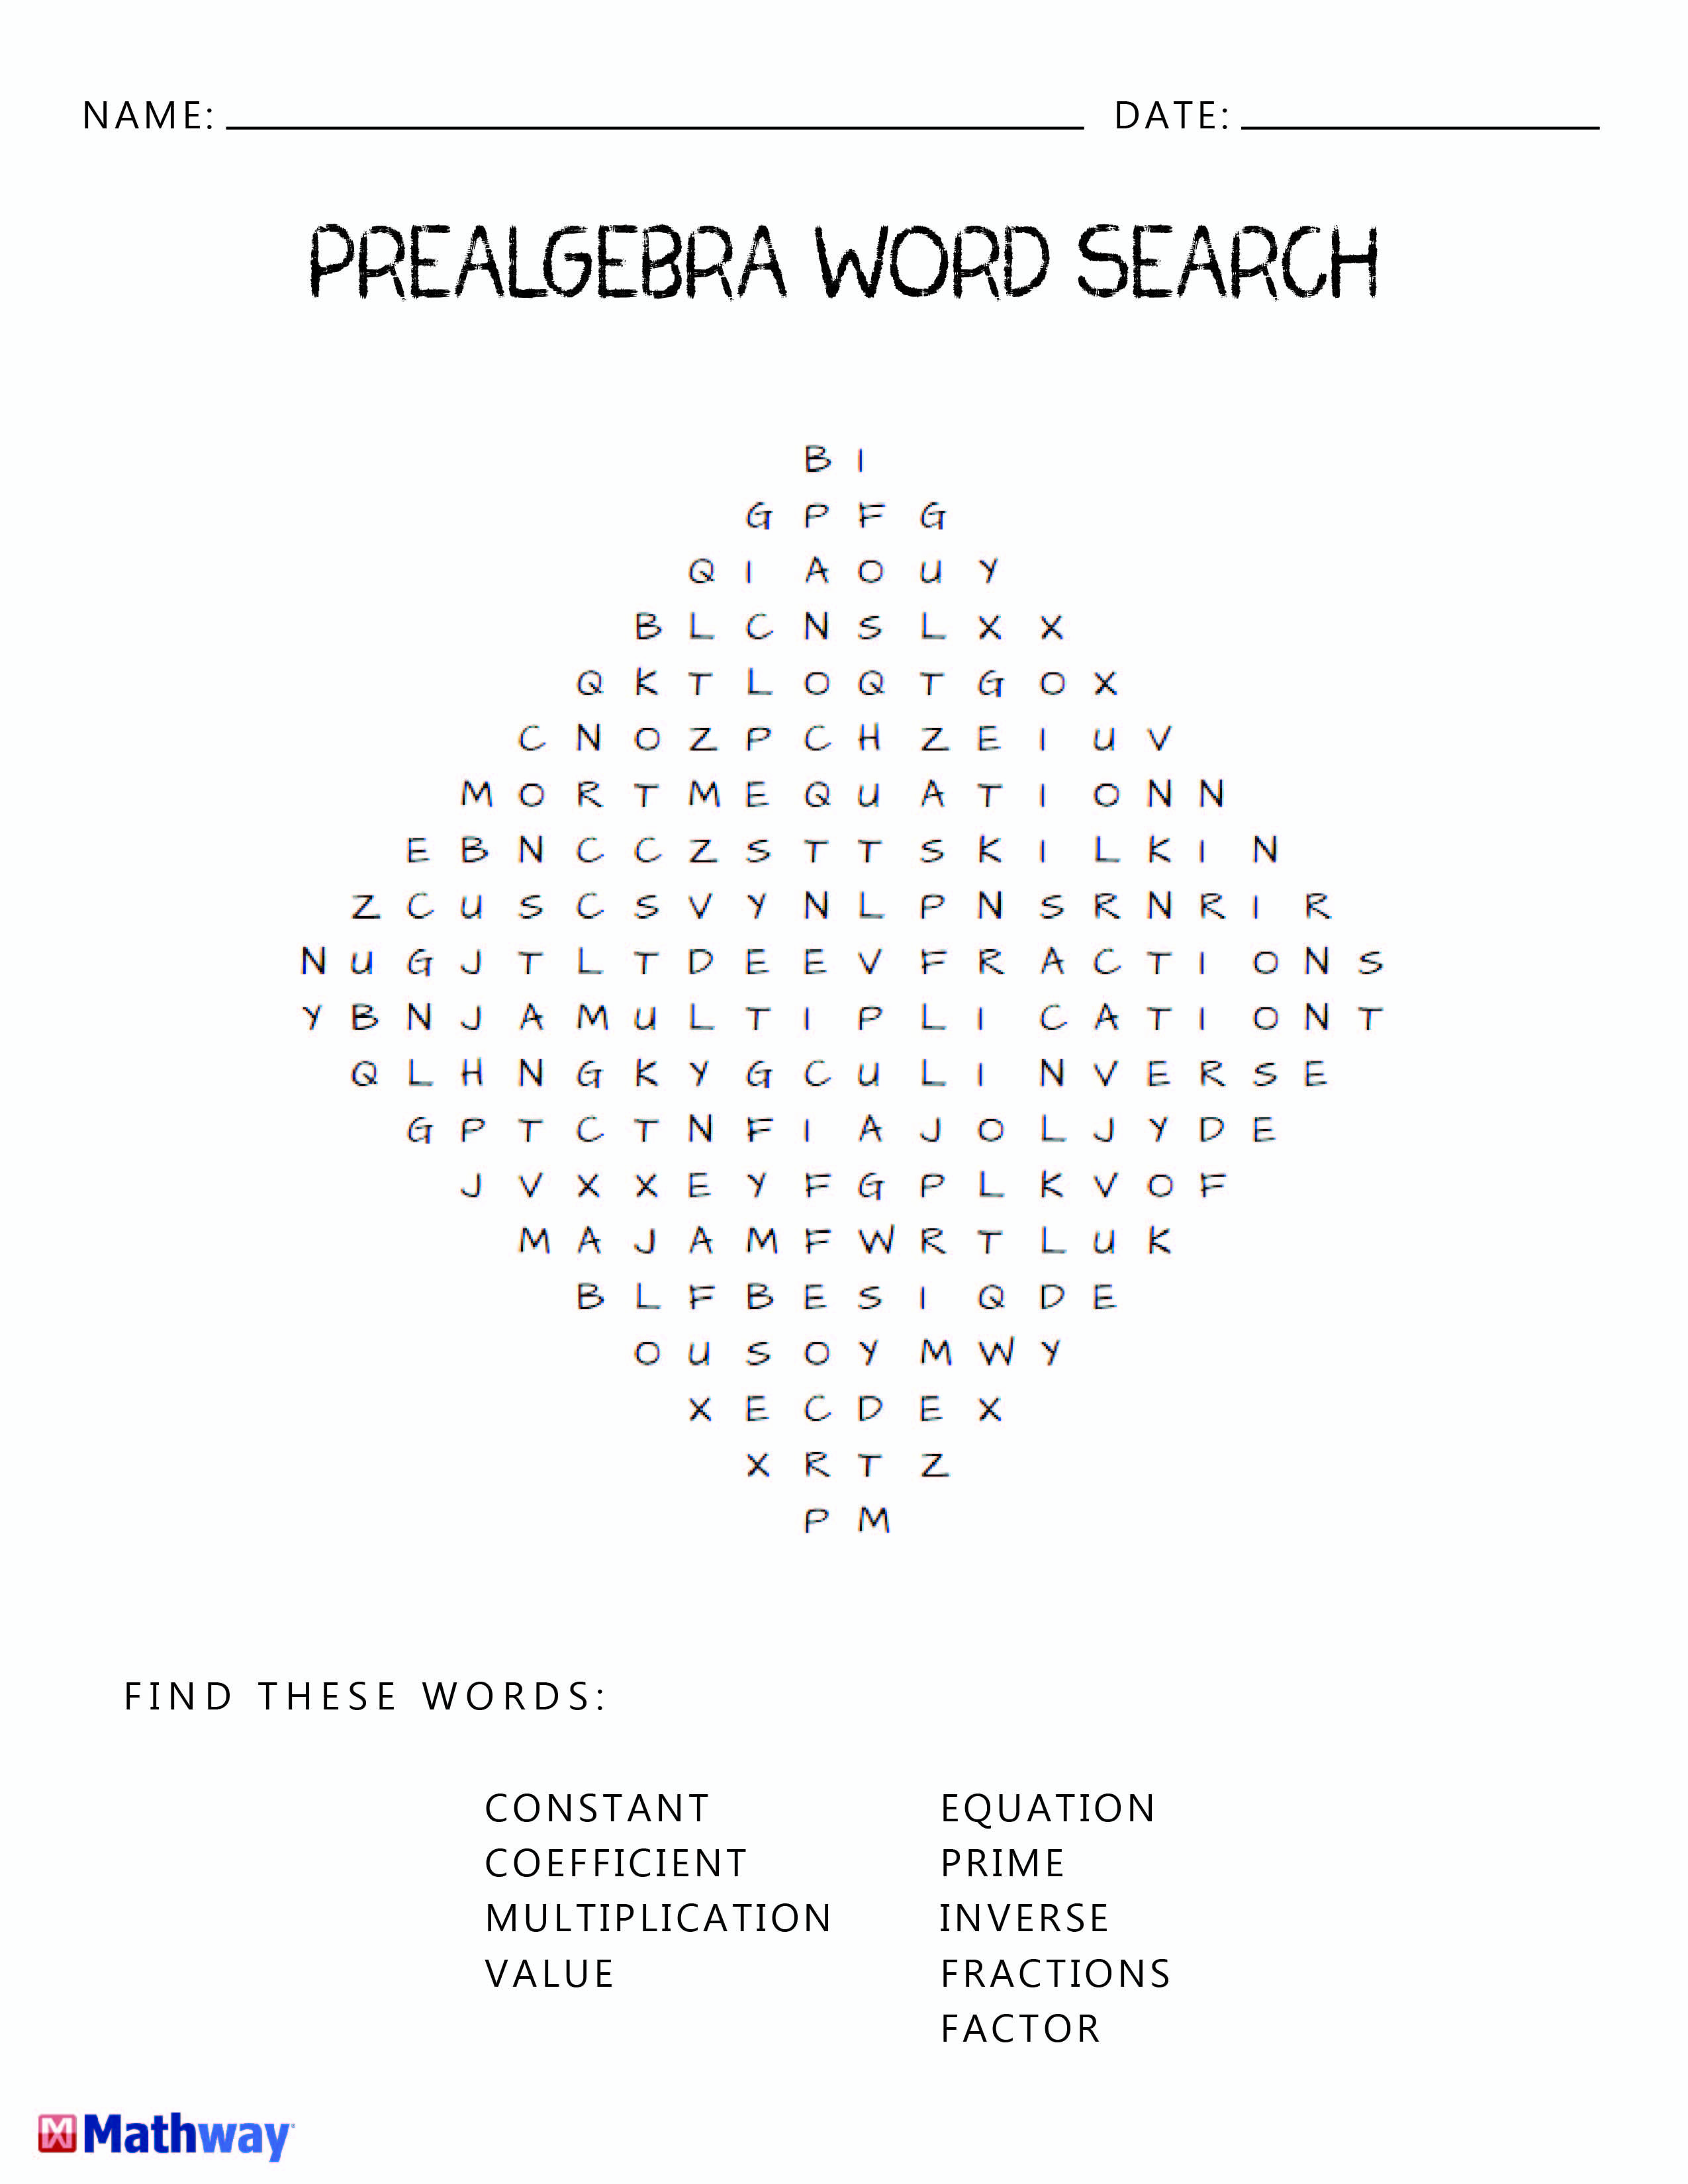 Love Word Search Puzzles Follow Our Board Print Out Your Favorites And Have Some Fun Printable Crossword Puzzles Math Word Search Jigsaw Puzzles For Kids